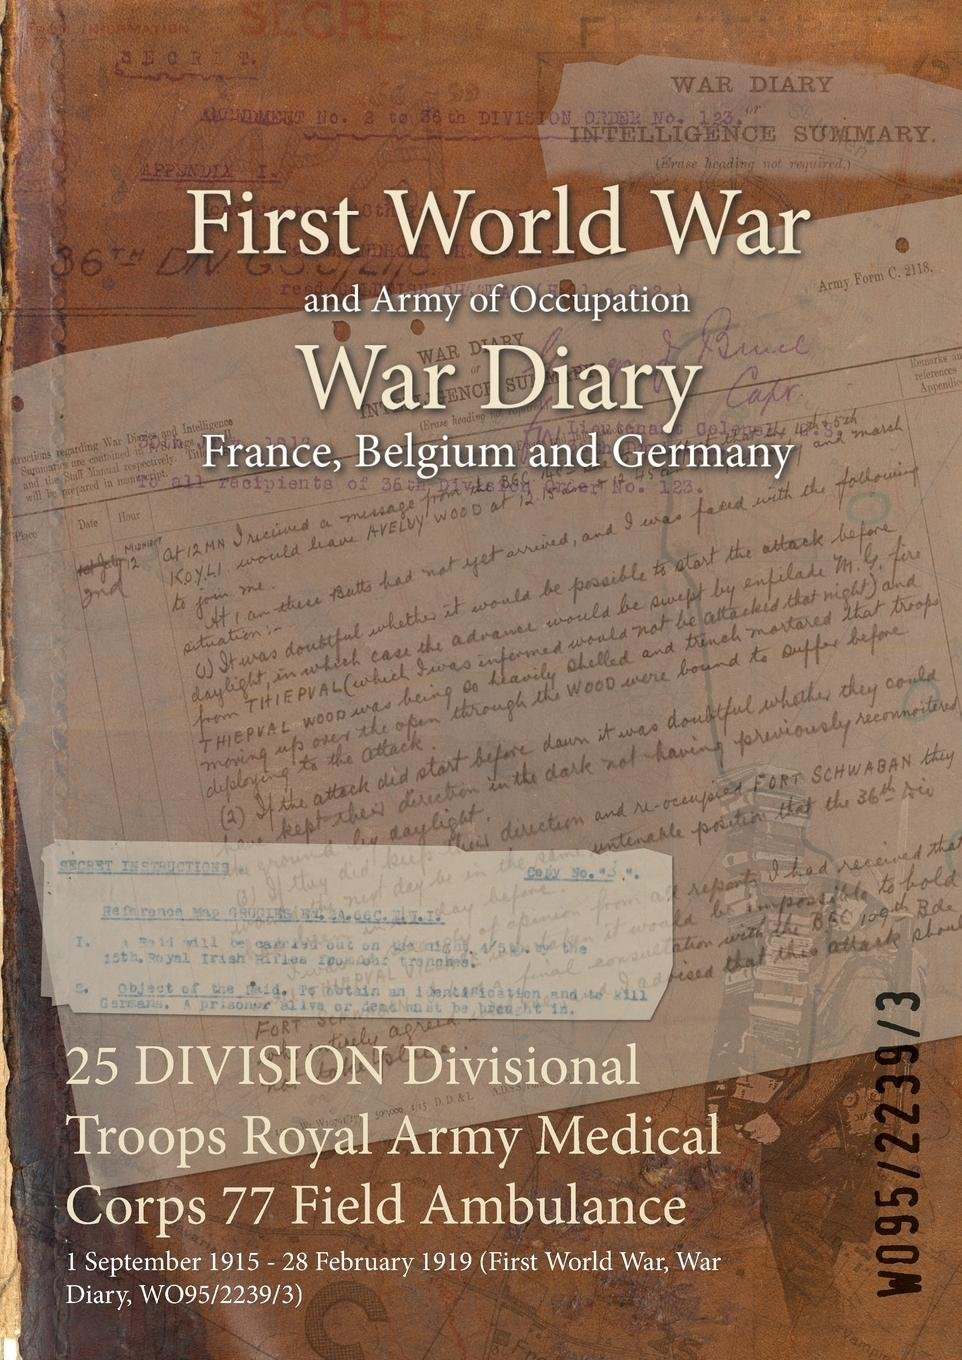 Download 25 Division Divisional Troops Royal Army Medical Corps 77 Field Ambulance: 1 September 1915 - 28 February 1919 (First World War, War Diary, Wo95/2239/3) pdf